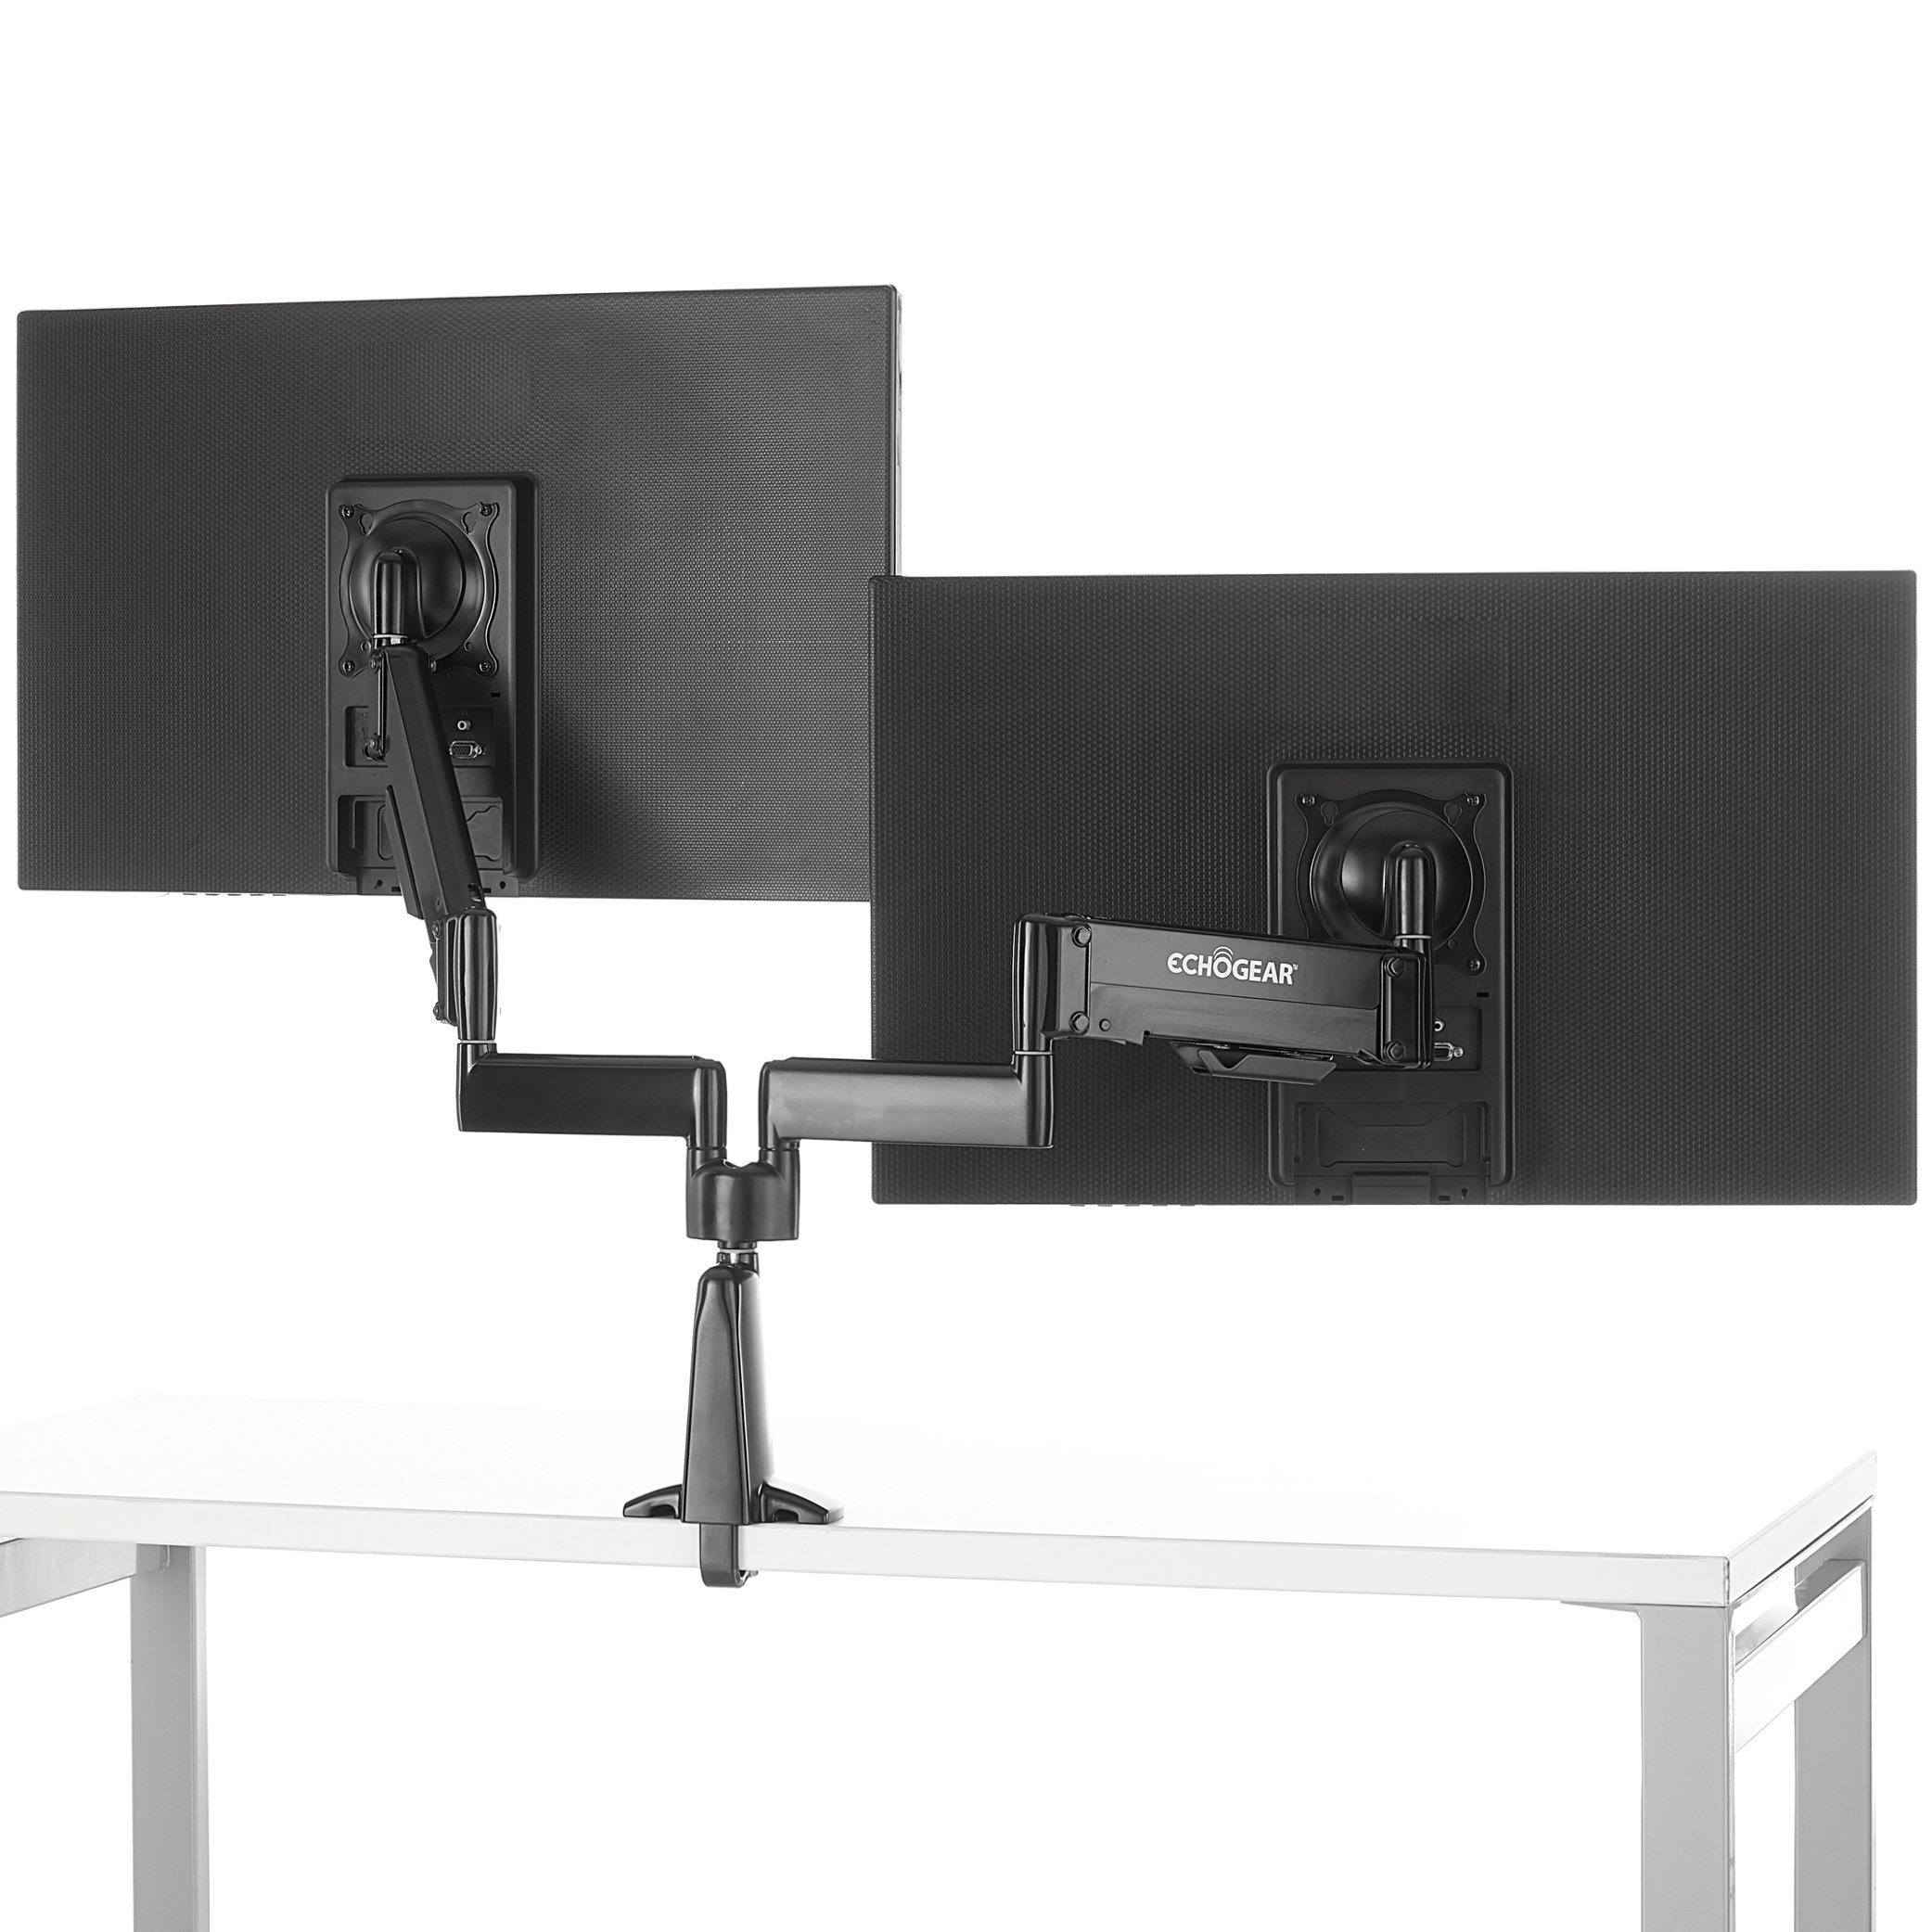 ECHOGEAR Dual Monitor Desk Mount For Gaming & Office Monitors - Move Your Monitors To The Perfect Spot With Dynamic Gas Spring Adjustments - Works With 2 Vertical Or Horizontal Monitors - ECHO-GM2FC